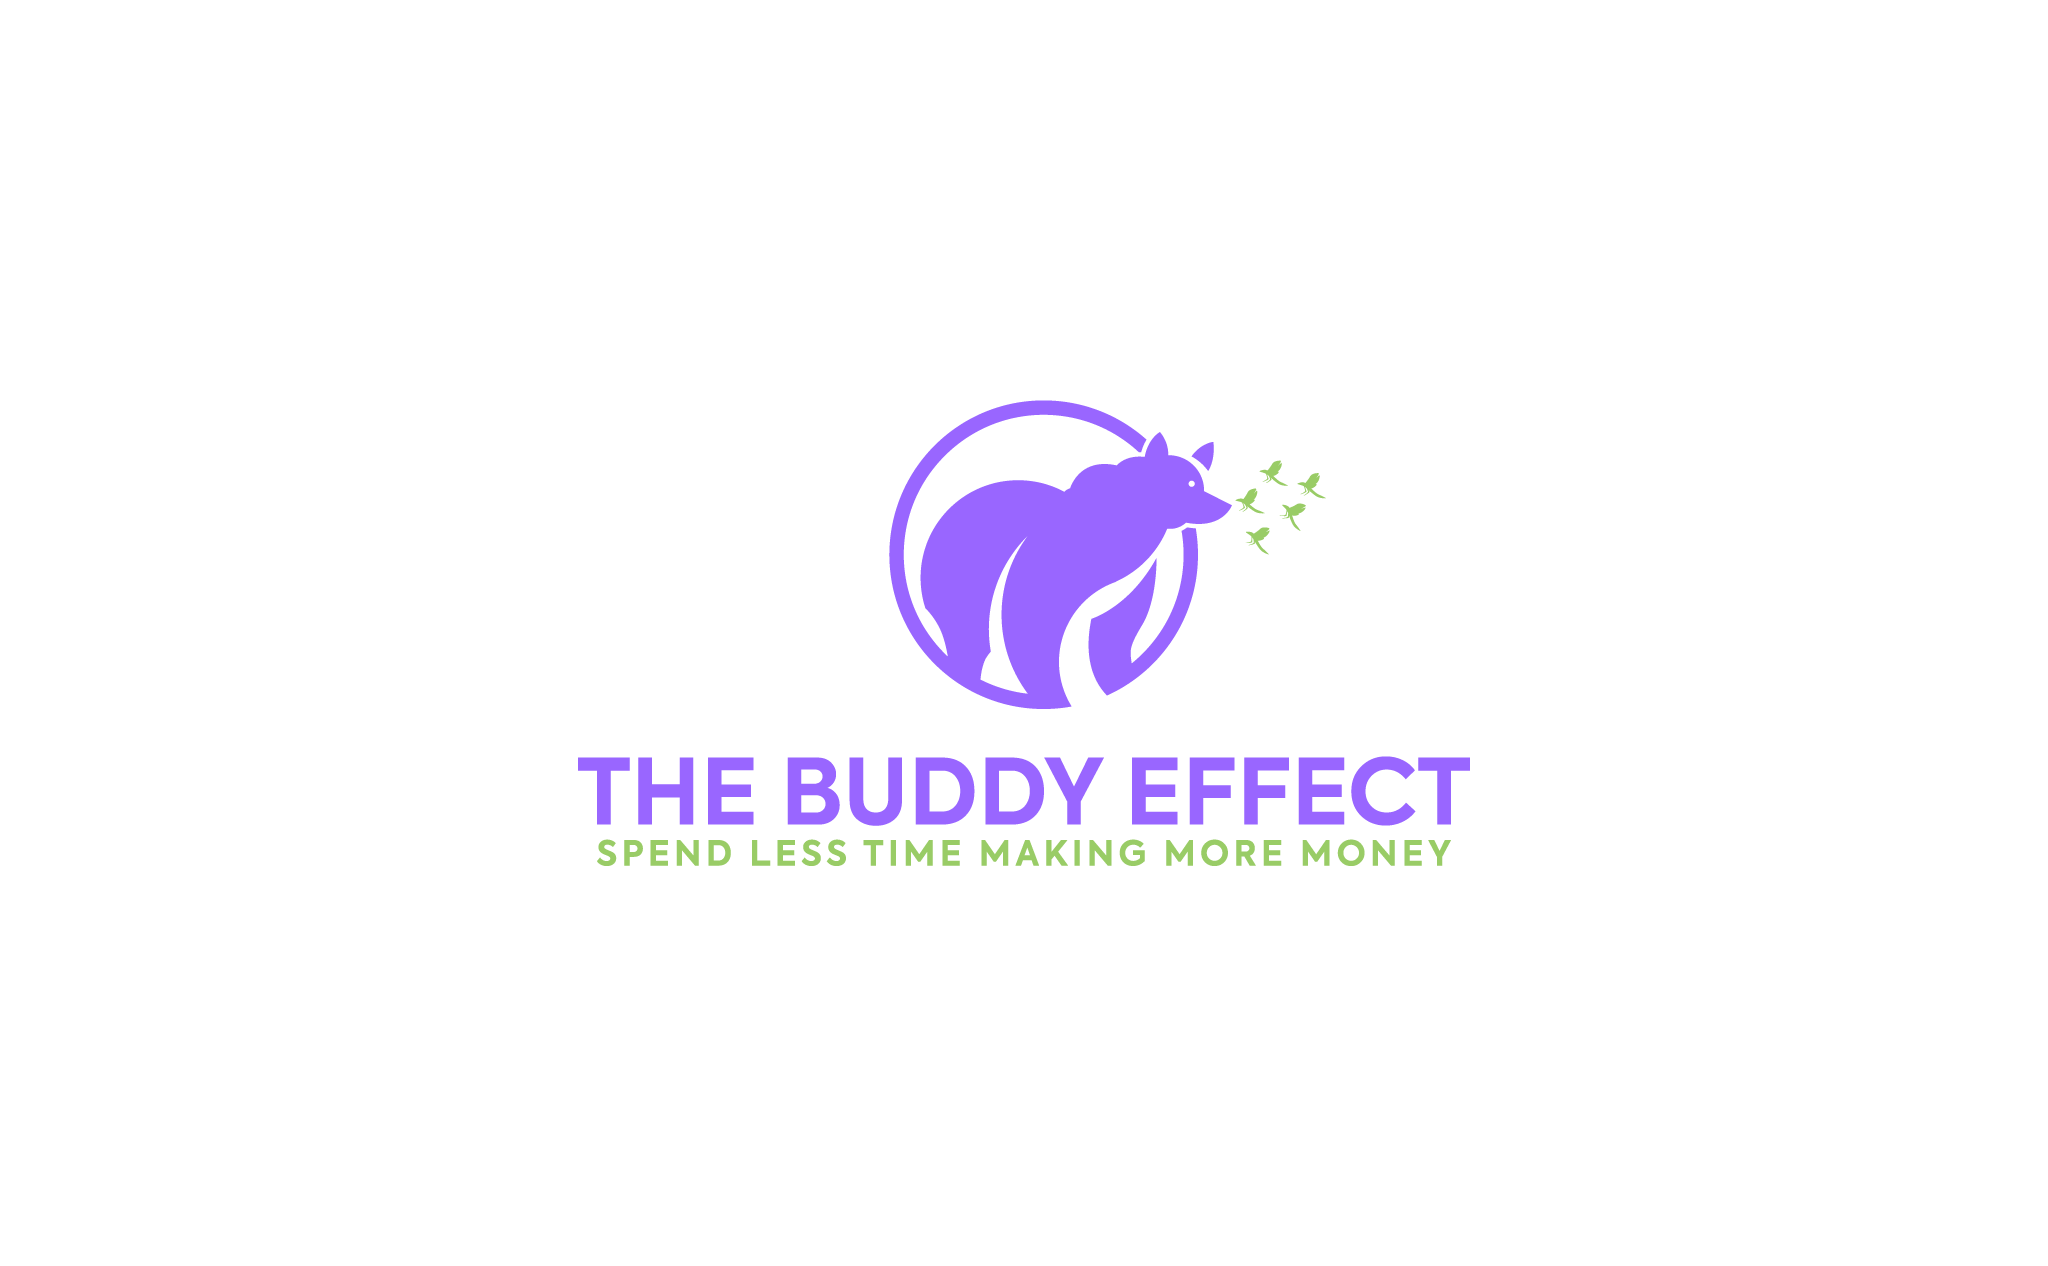 The Buddy Effect